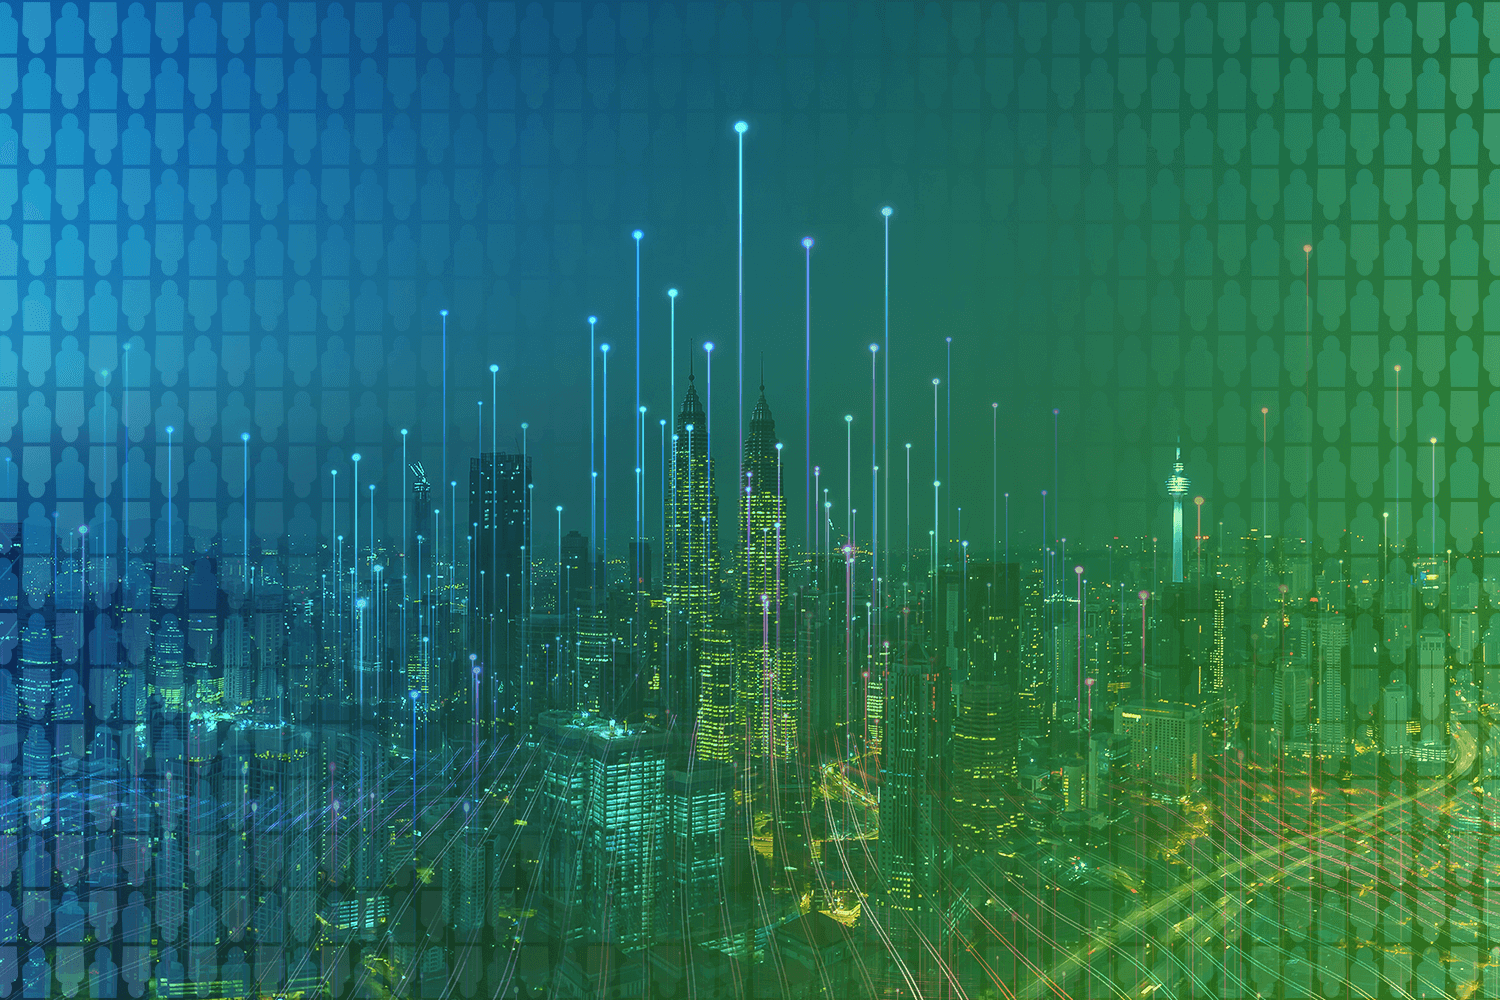 color-treated photo of skyline representing connectivity